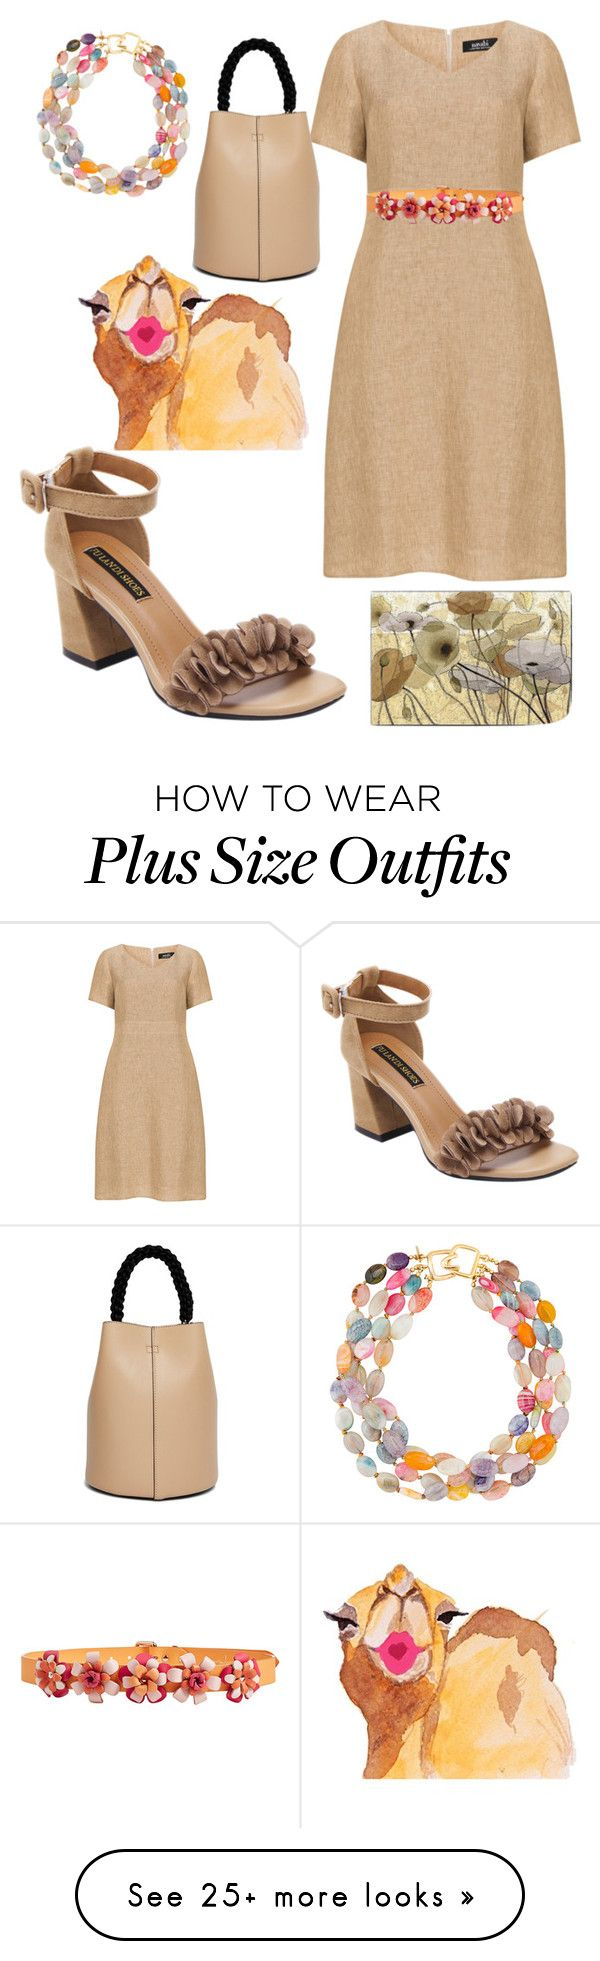 """""""plus size elise"""" by aleger-1 on Polyvore featuring navabi, Kenneth Jay Lane, Topshop and Marina Hoermanseder"""